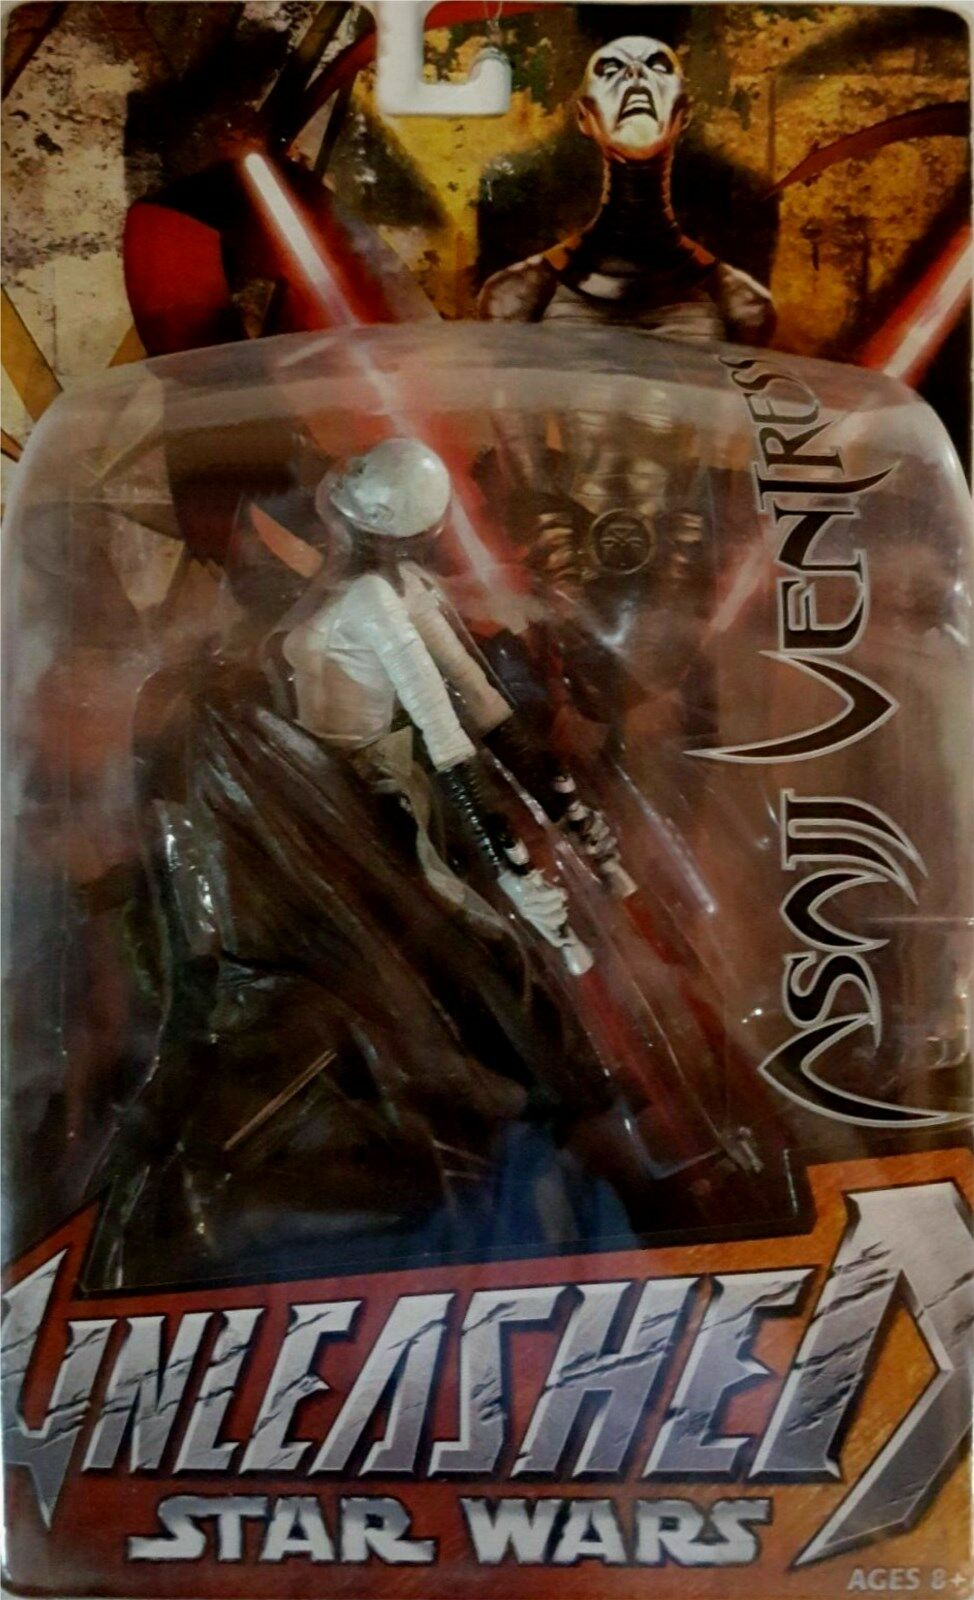 Star Wars ASAJJ VENTRESS Unleashed New  8 inch inch inch  (Year 2005) Factory Sealed e77198